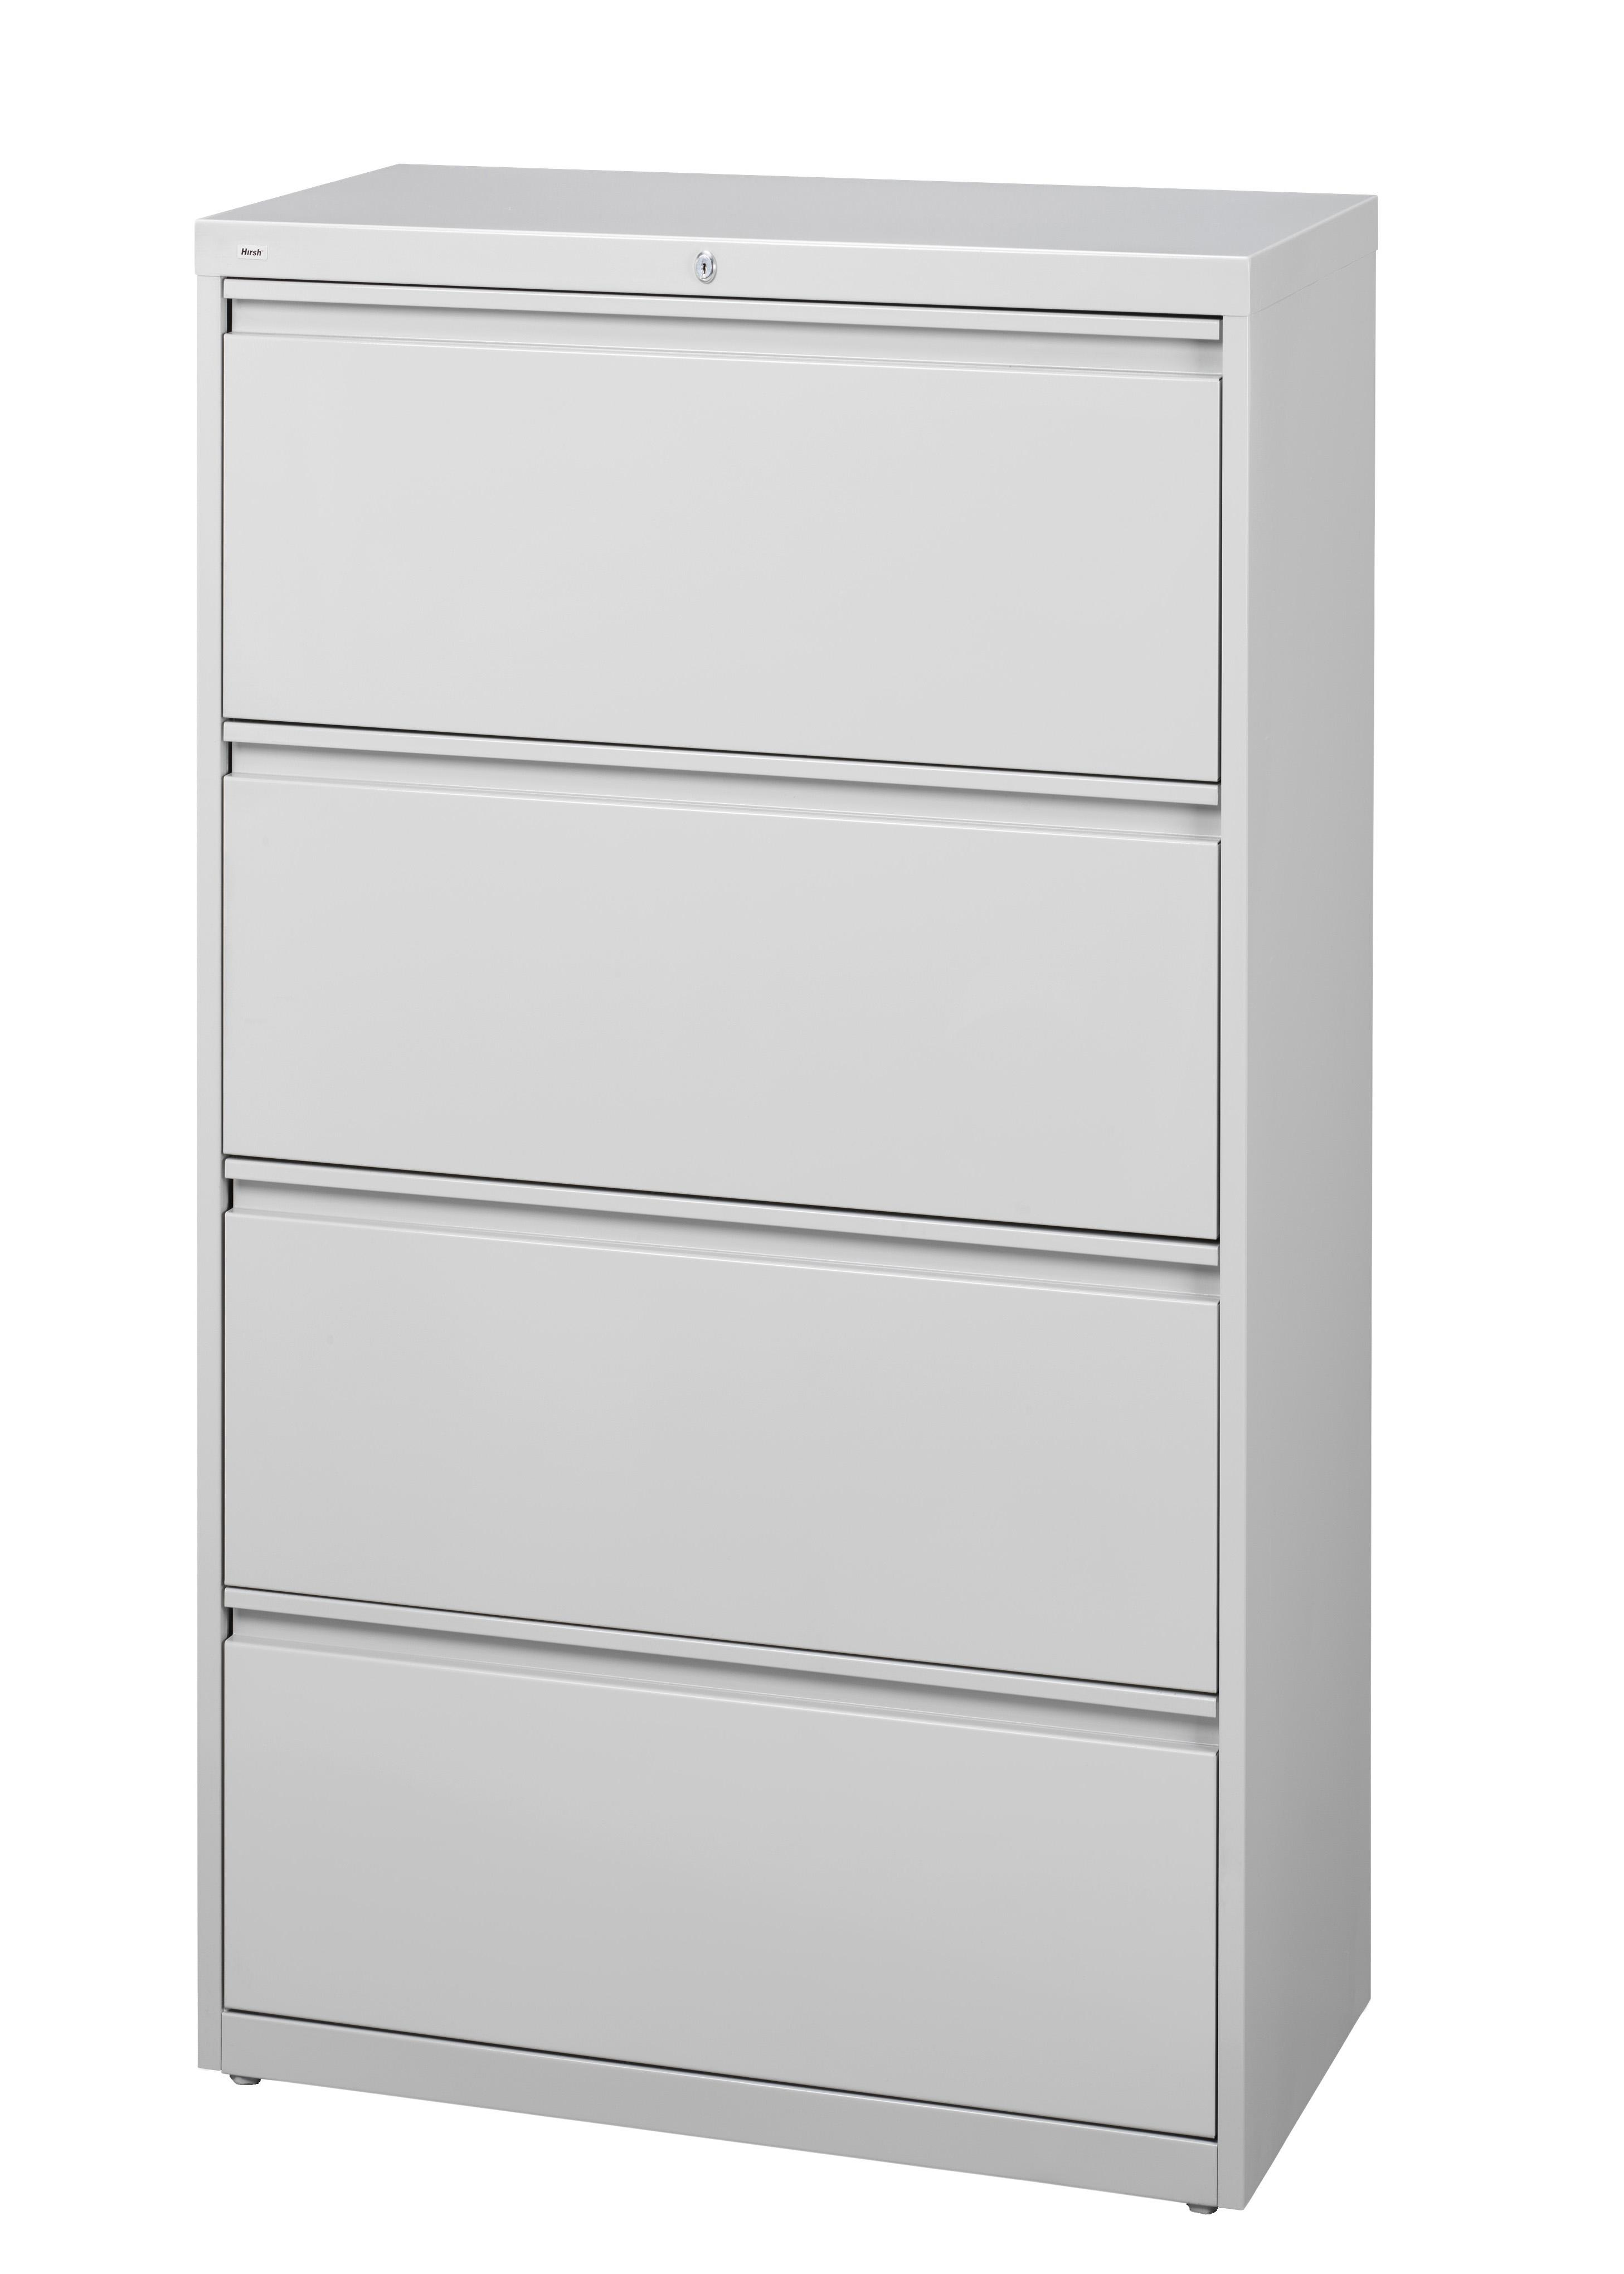 Hirsh HL10000 Series 30-inch Wide 4-drawer Commercial Lateral File Cabinet - Thumbnail 2